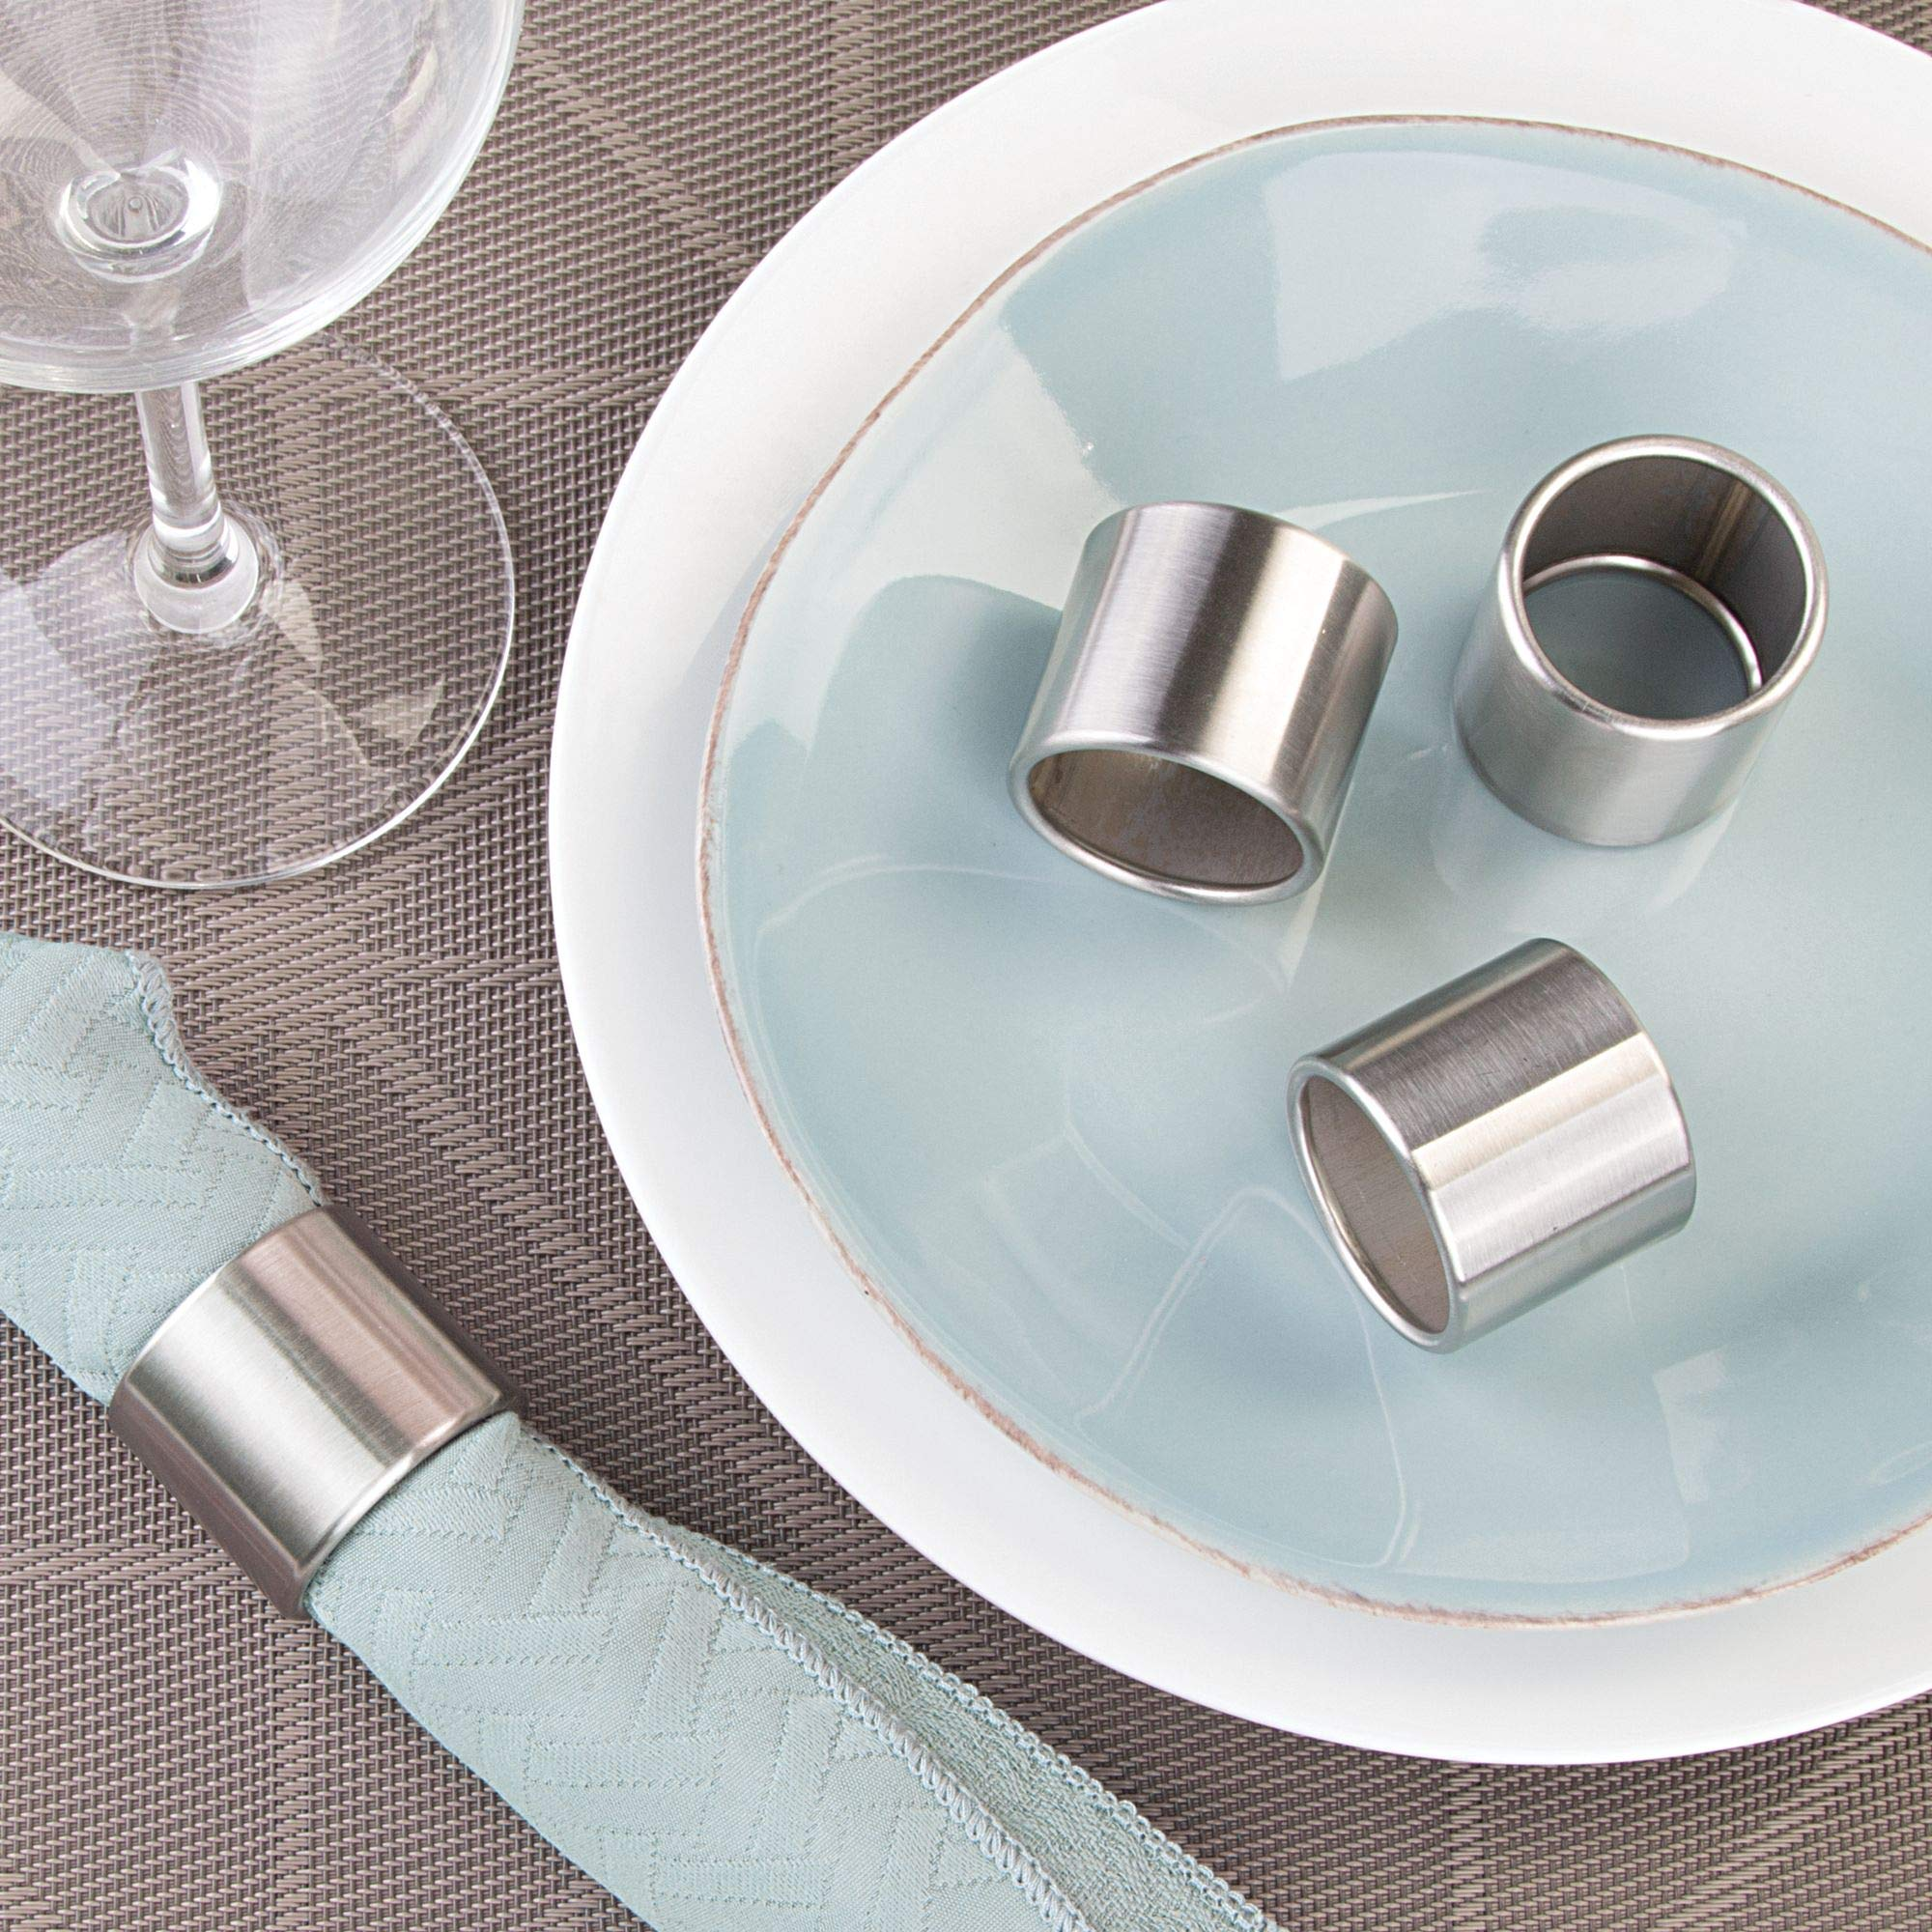 mDesign Napkin Rings for Home, Kitchen, Dining Room - Pack of 8, Brushed Stainless Steel by mDesign (Image #3)